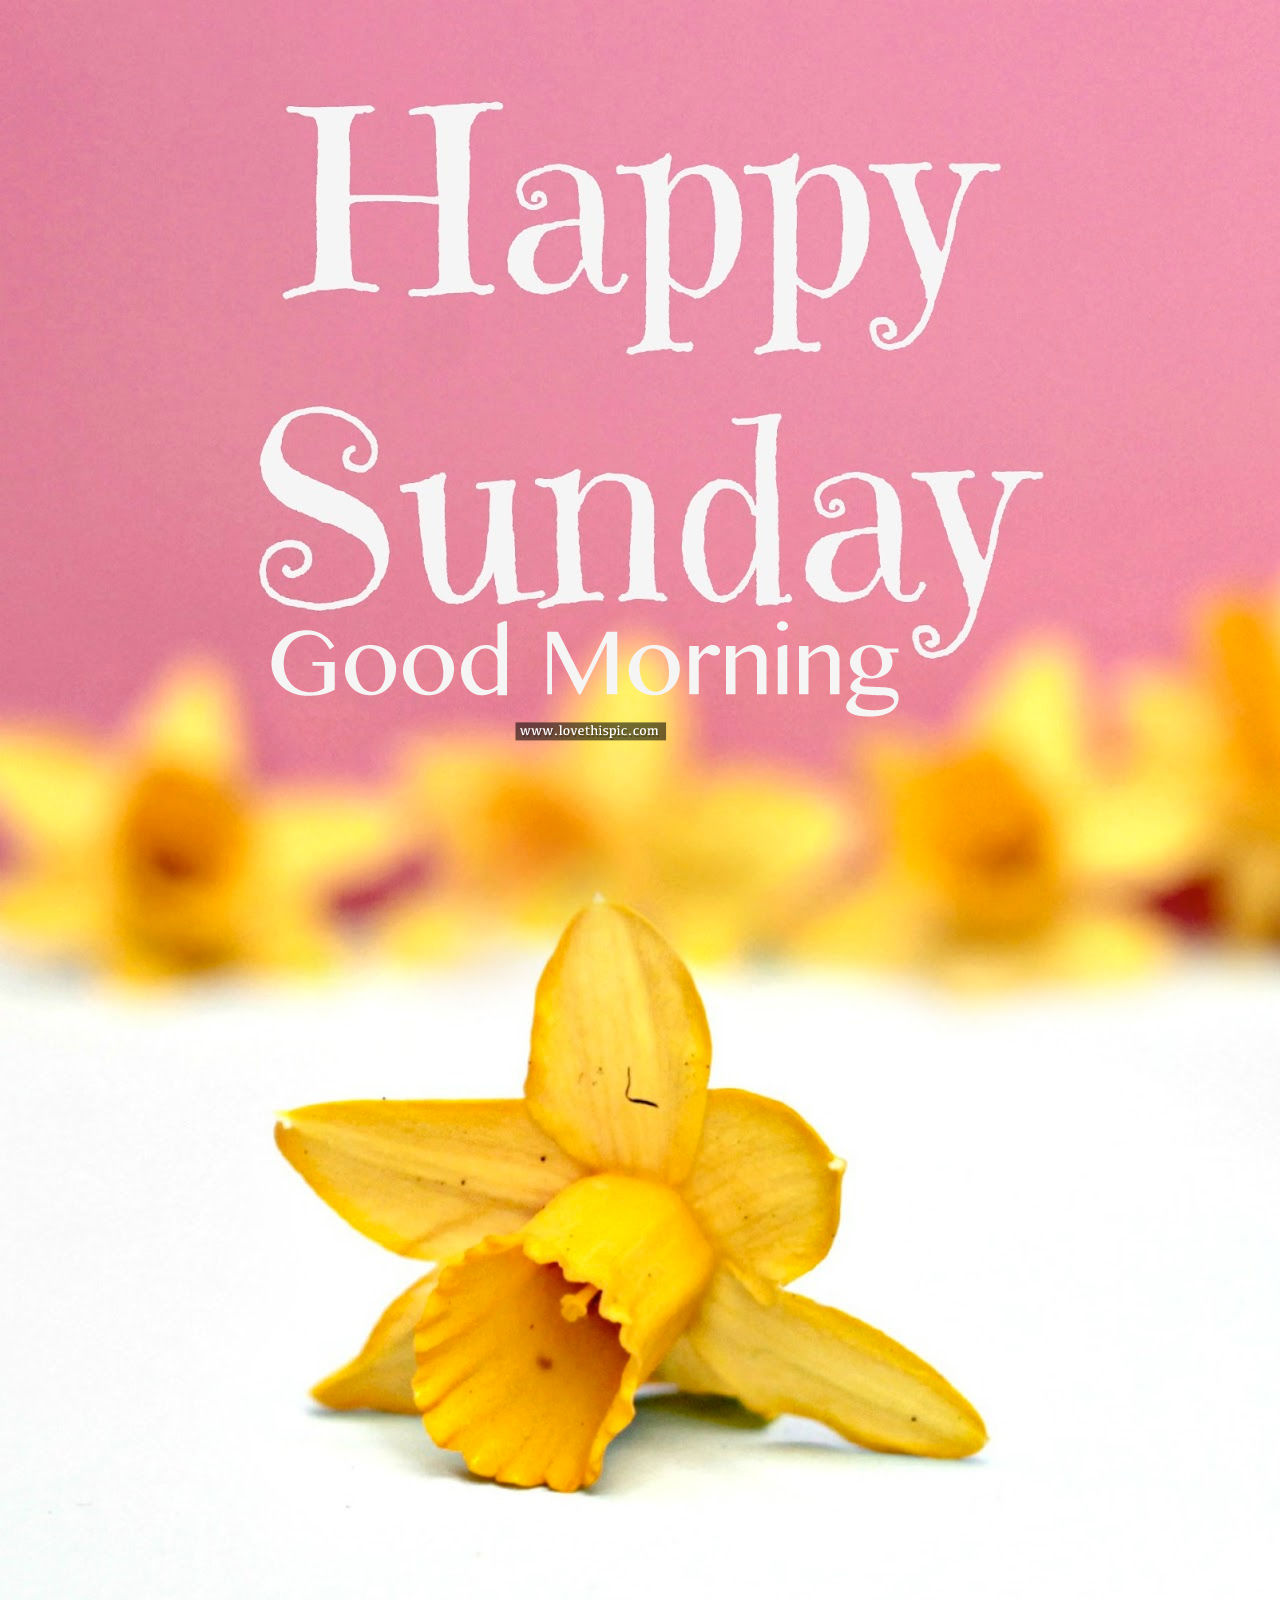 Good Morning And Happy Sunday Love Message : Happy sunday good morning pictures photos and images